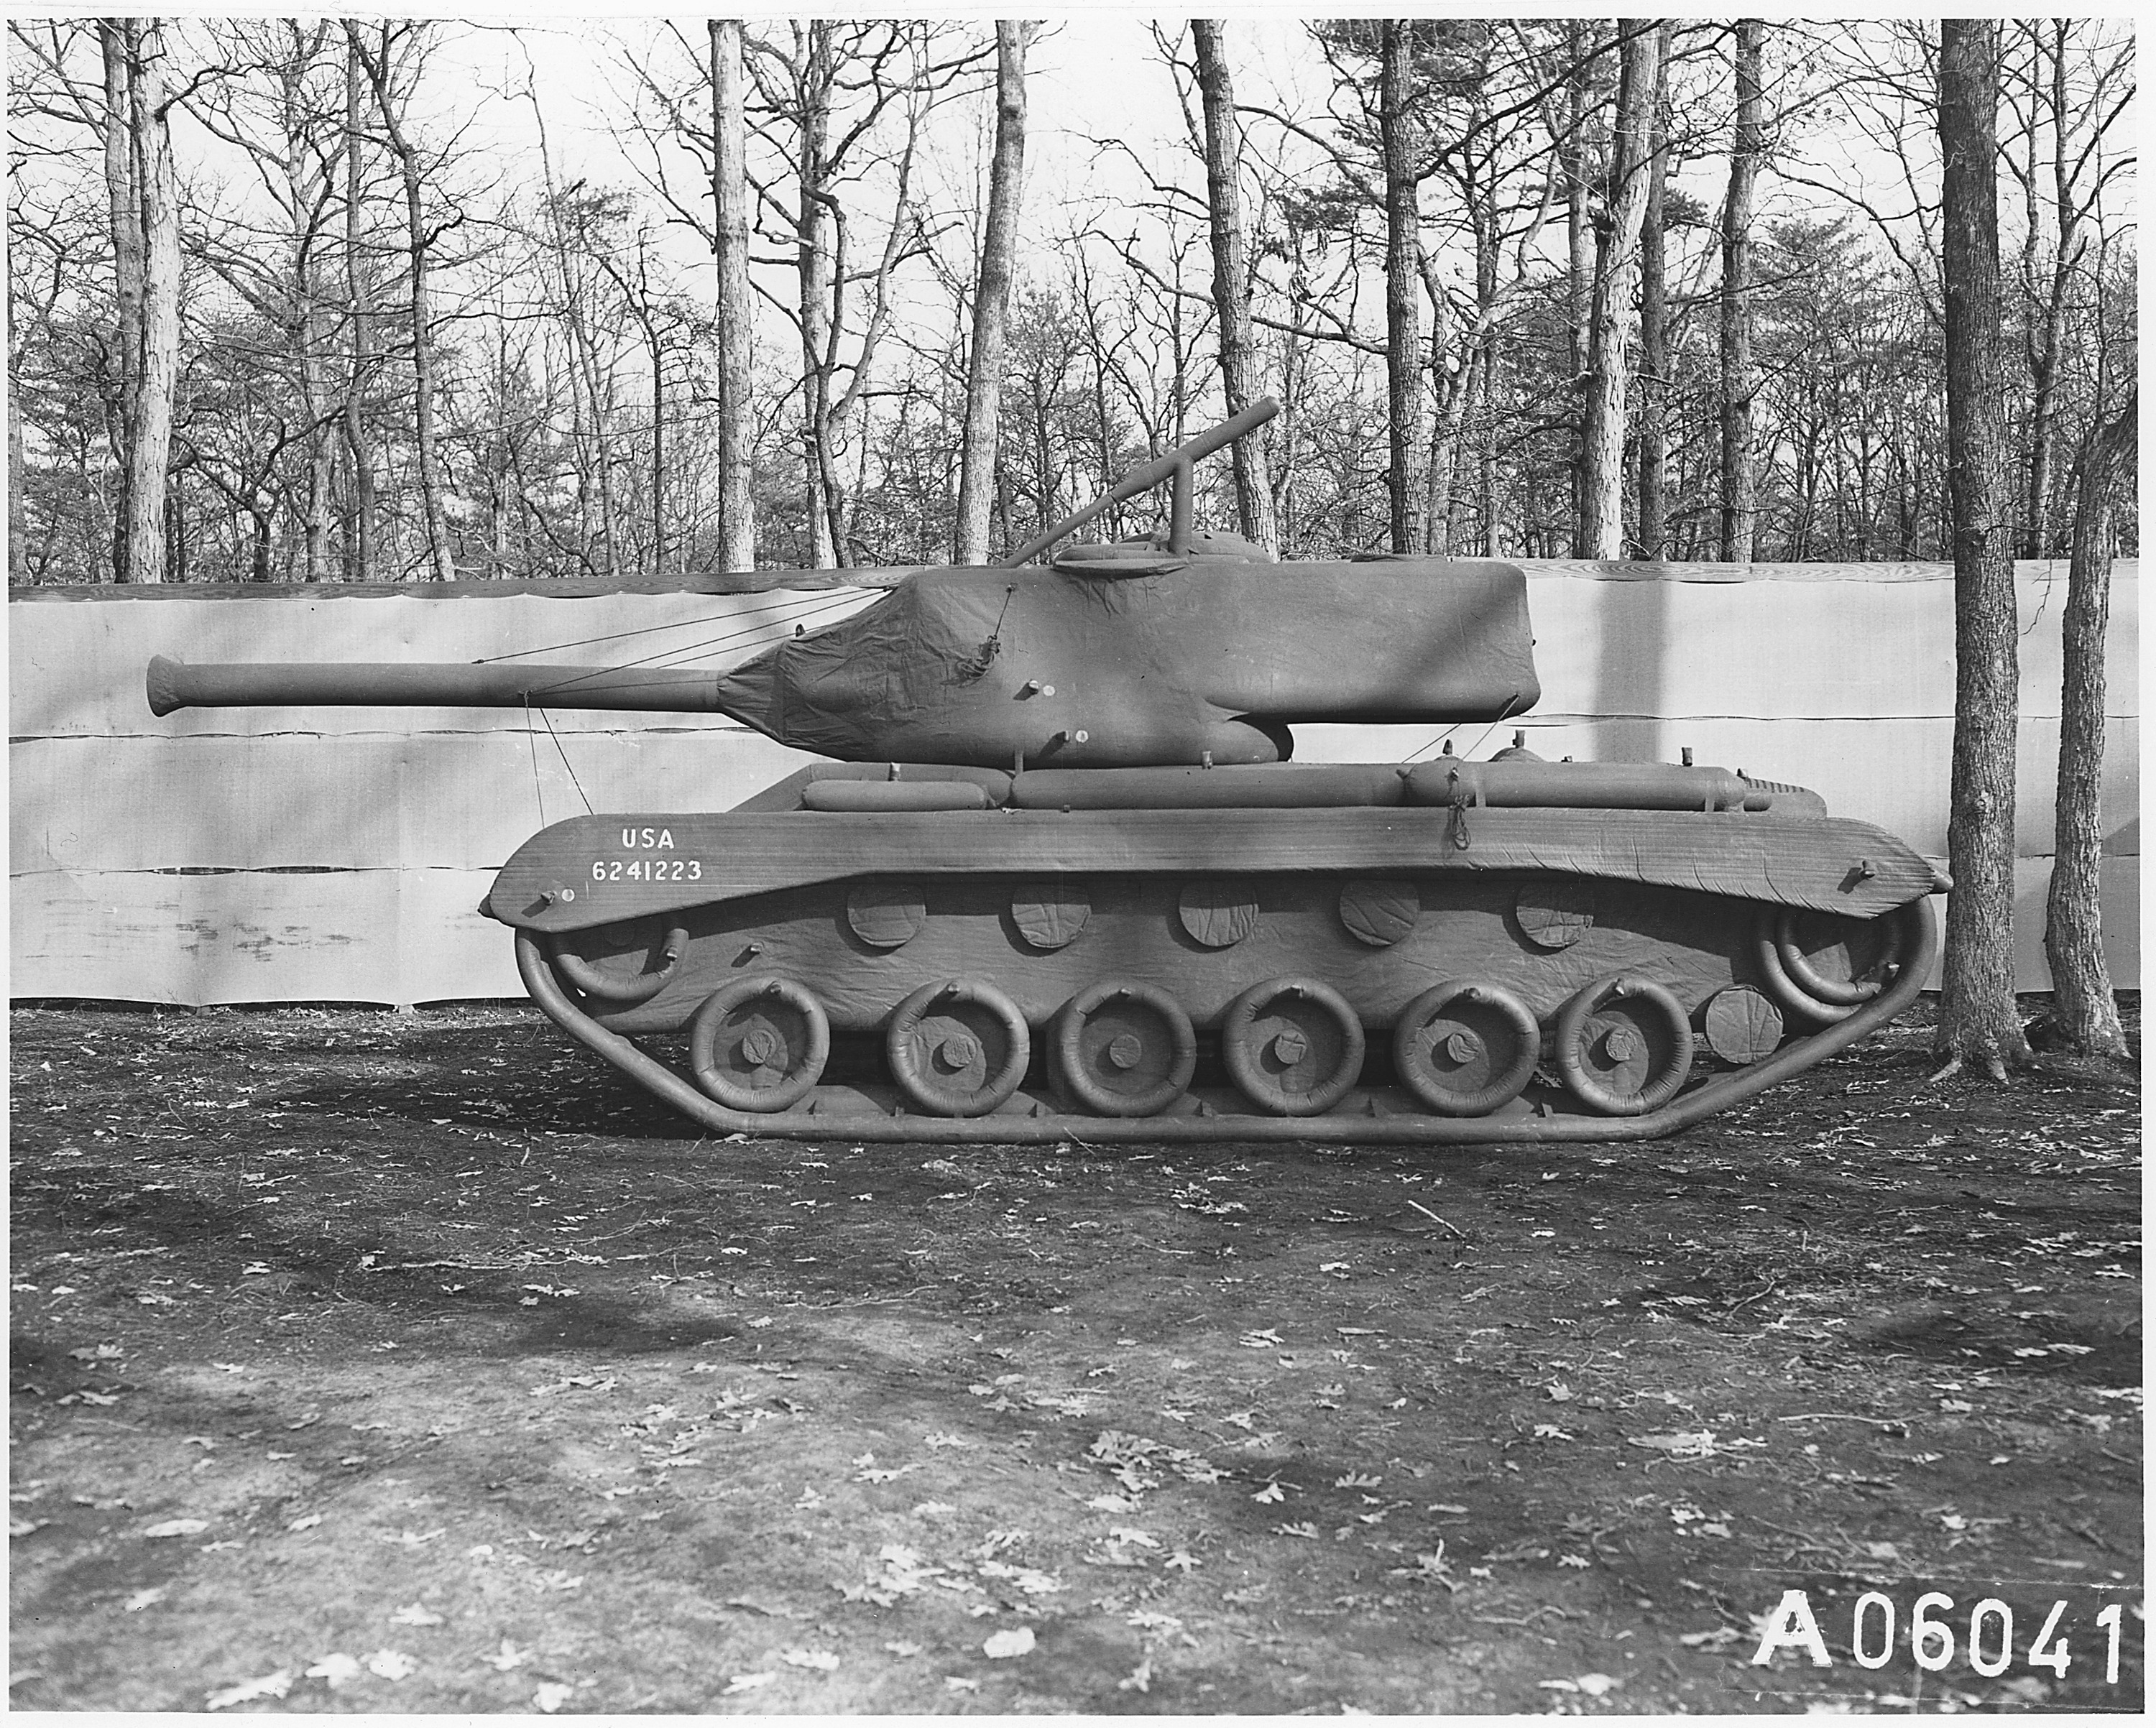 tank-gonflable-seconde-guerre-mondiale-04.jpg